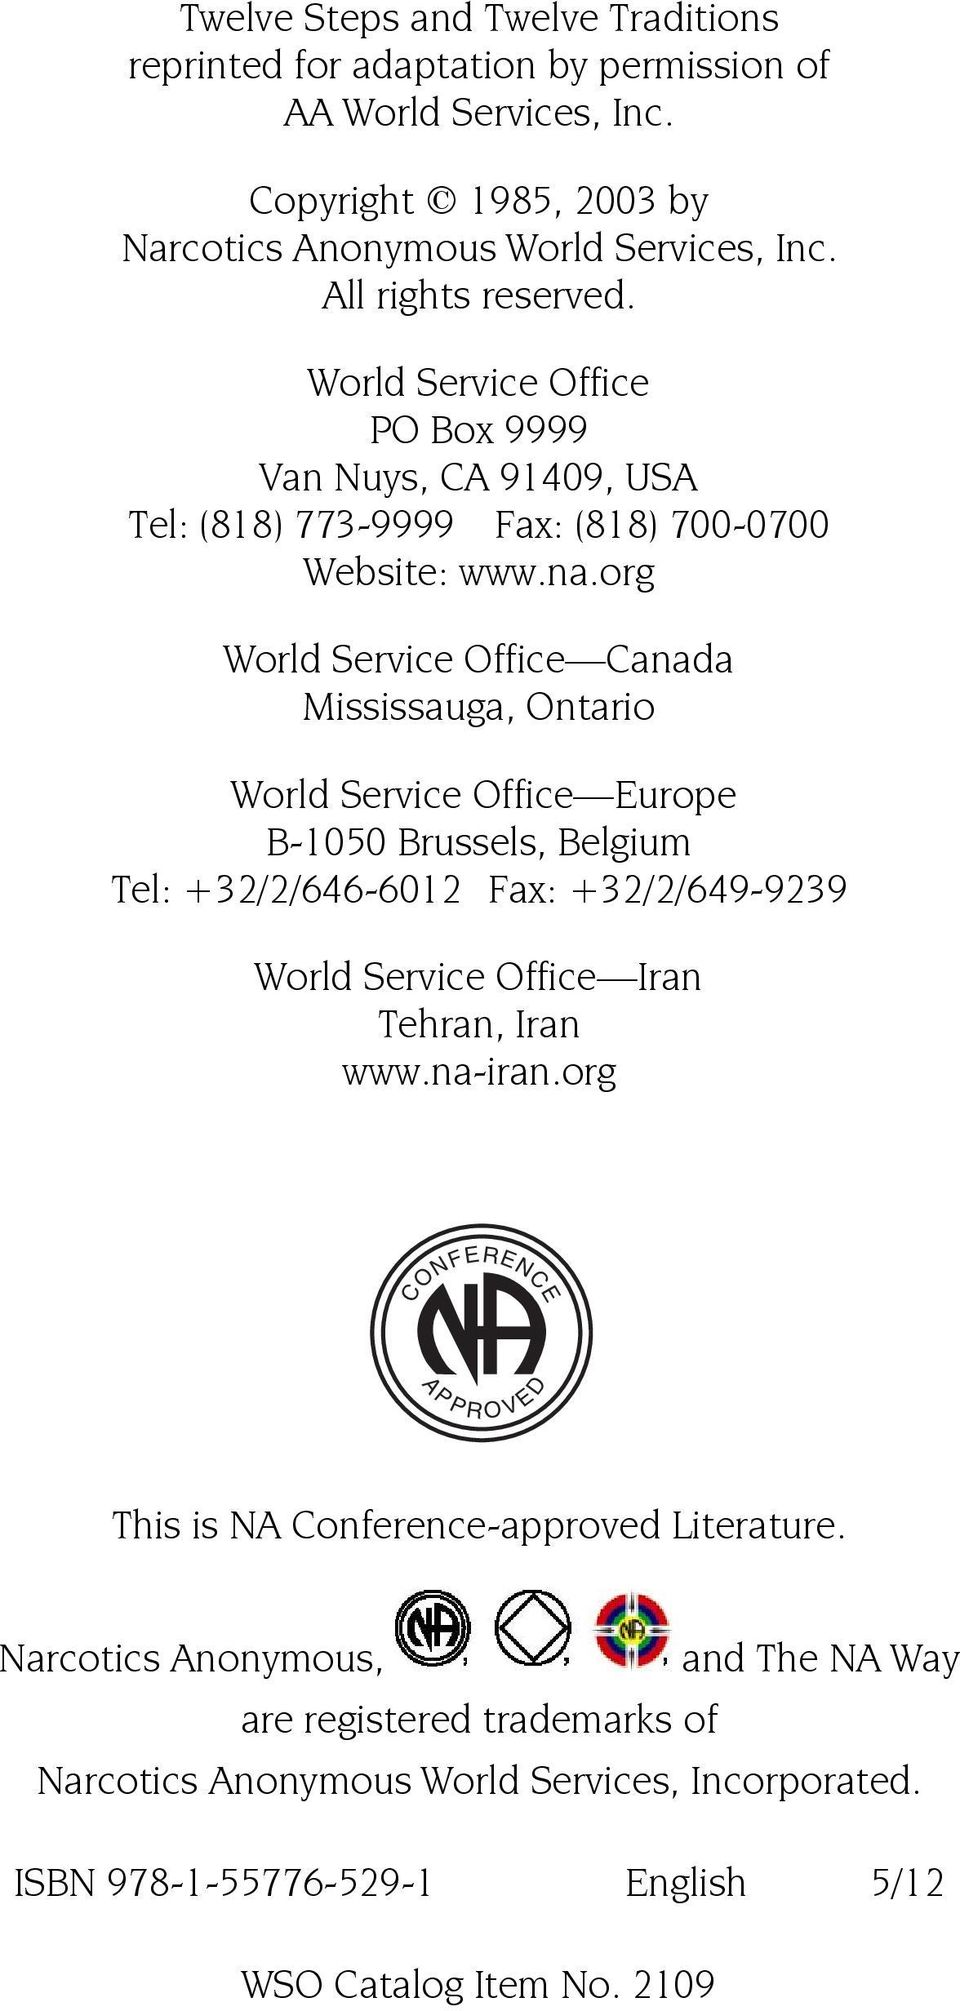 org World Service Office Canada Mississauga, Ontario World Service Office Europe B-1050 Brussels, Belgium Tel: +32/2/646-6012 Fax: +32/2/649-9239 World Service Office Iran Tehran, Iran